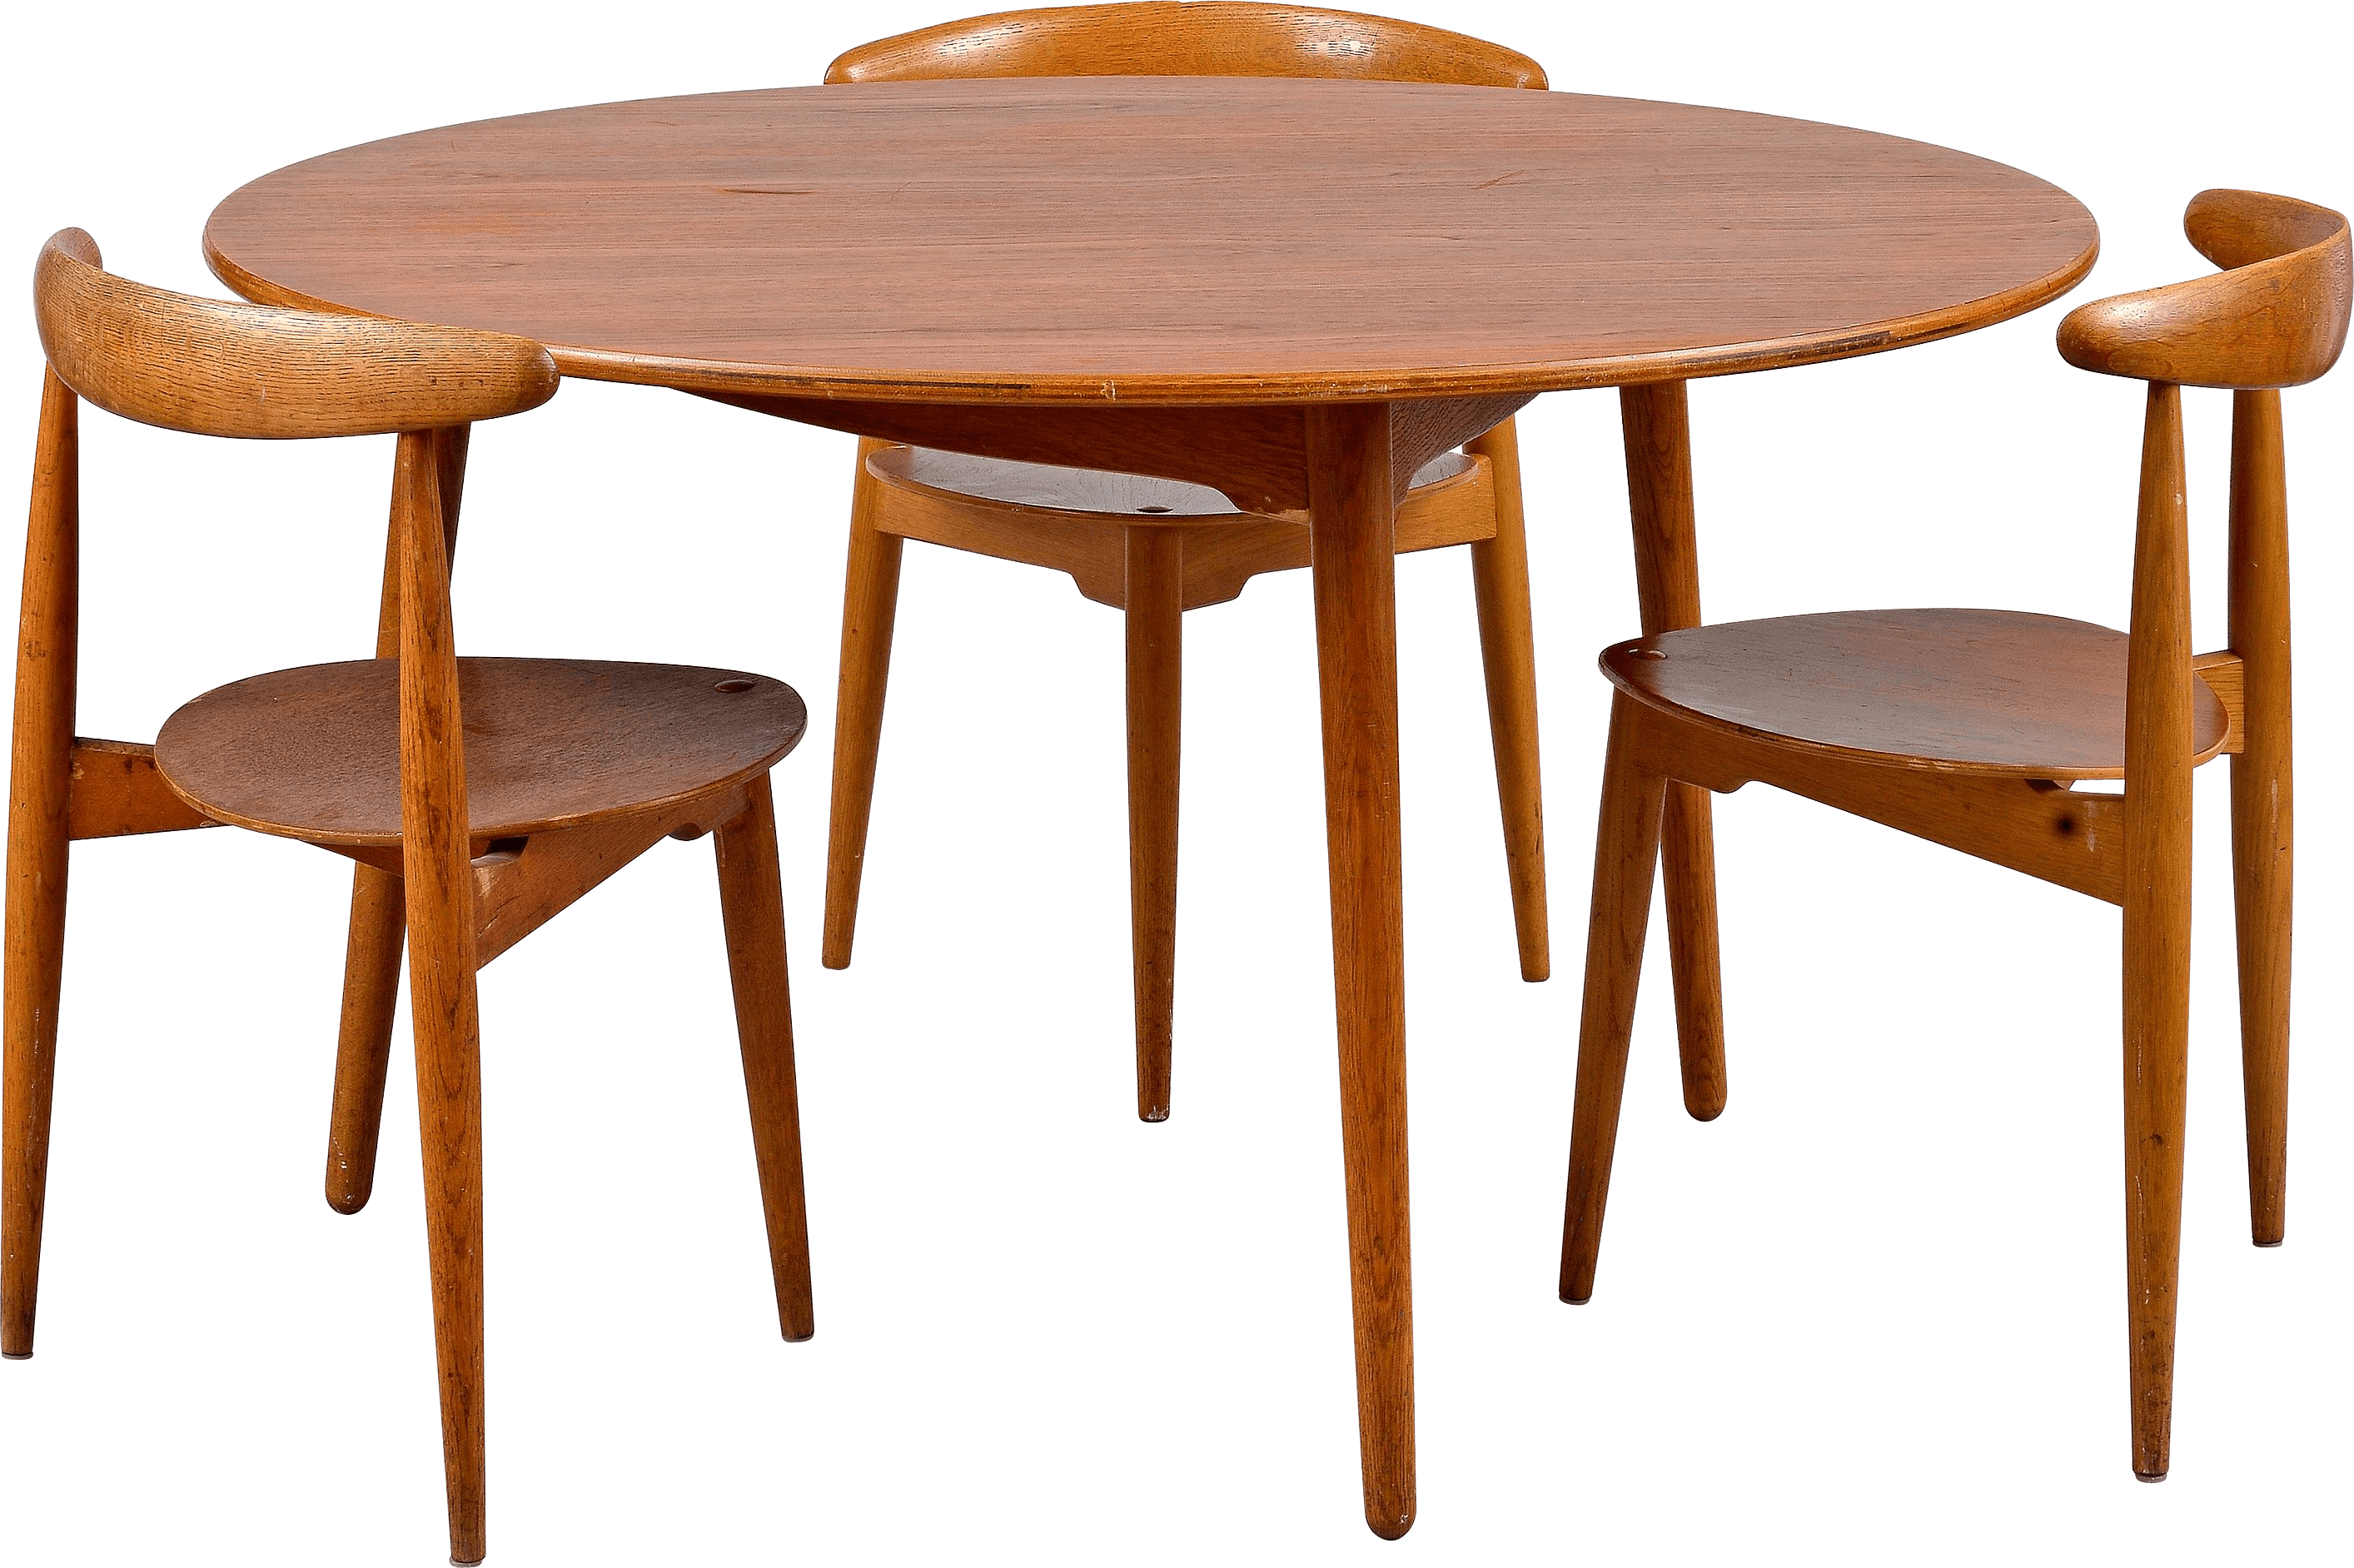 table and chairs png. chairs and table png stickpng